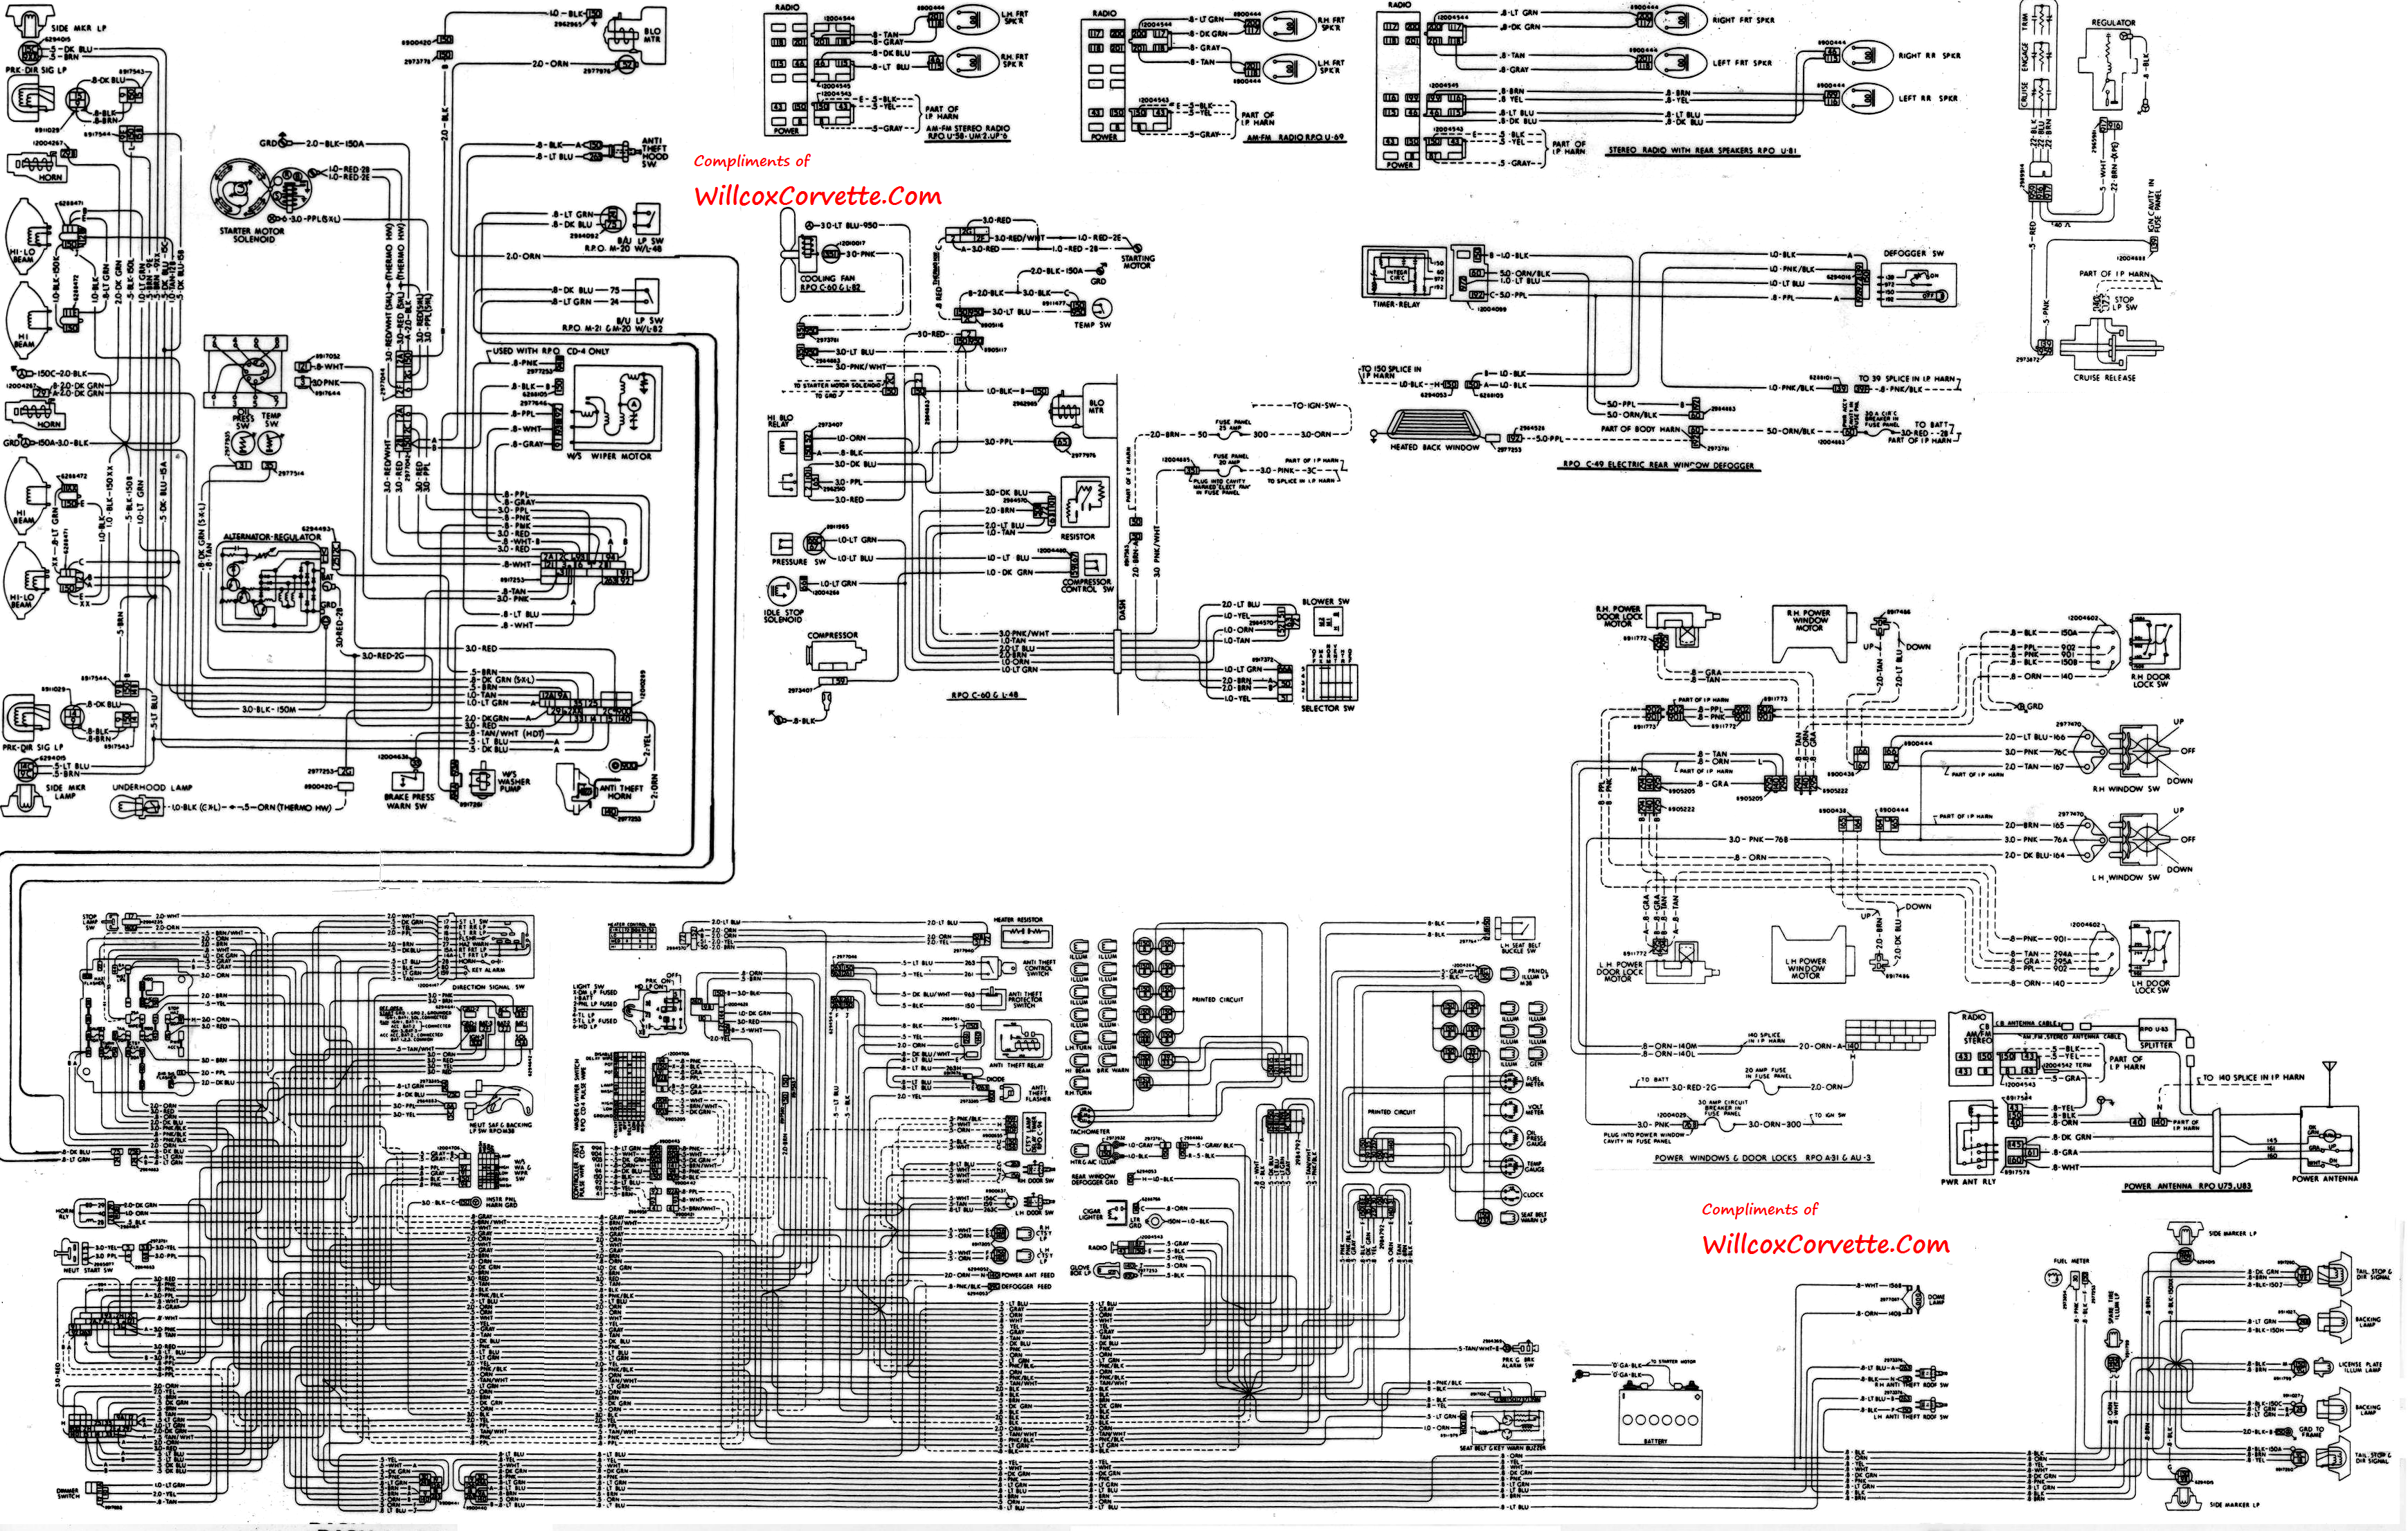 1979 wire diagram 1979 corvette wiring diagram aux fan wiring diagram 1979 corvette 1979 Corvette Fuse Box Diagram at mifinder.co